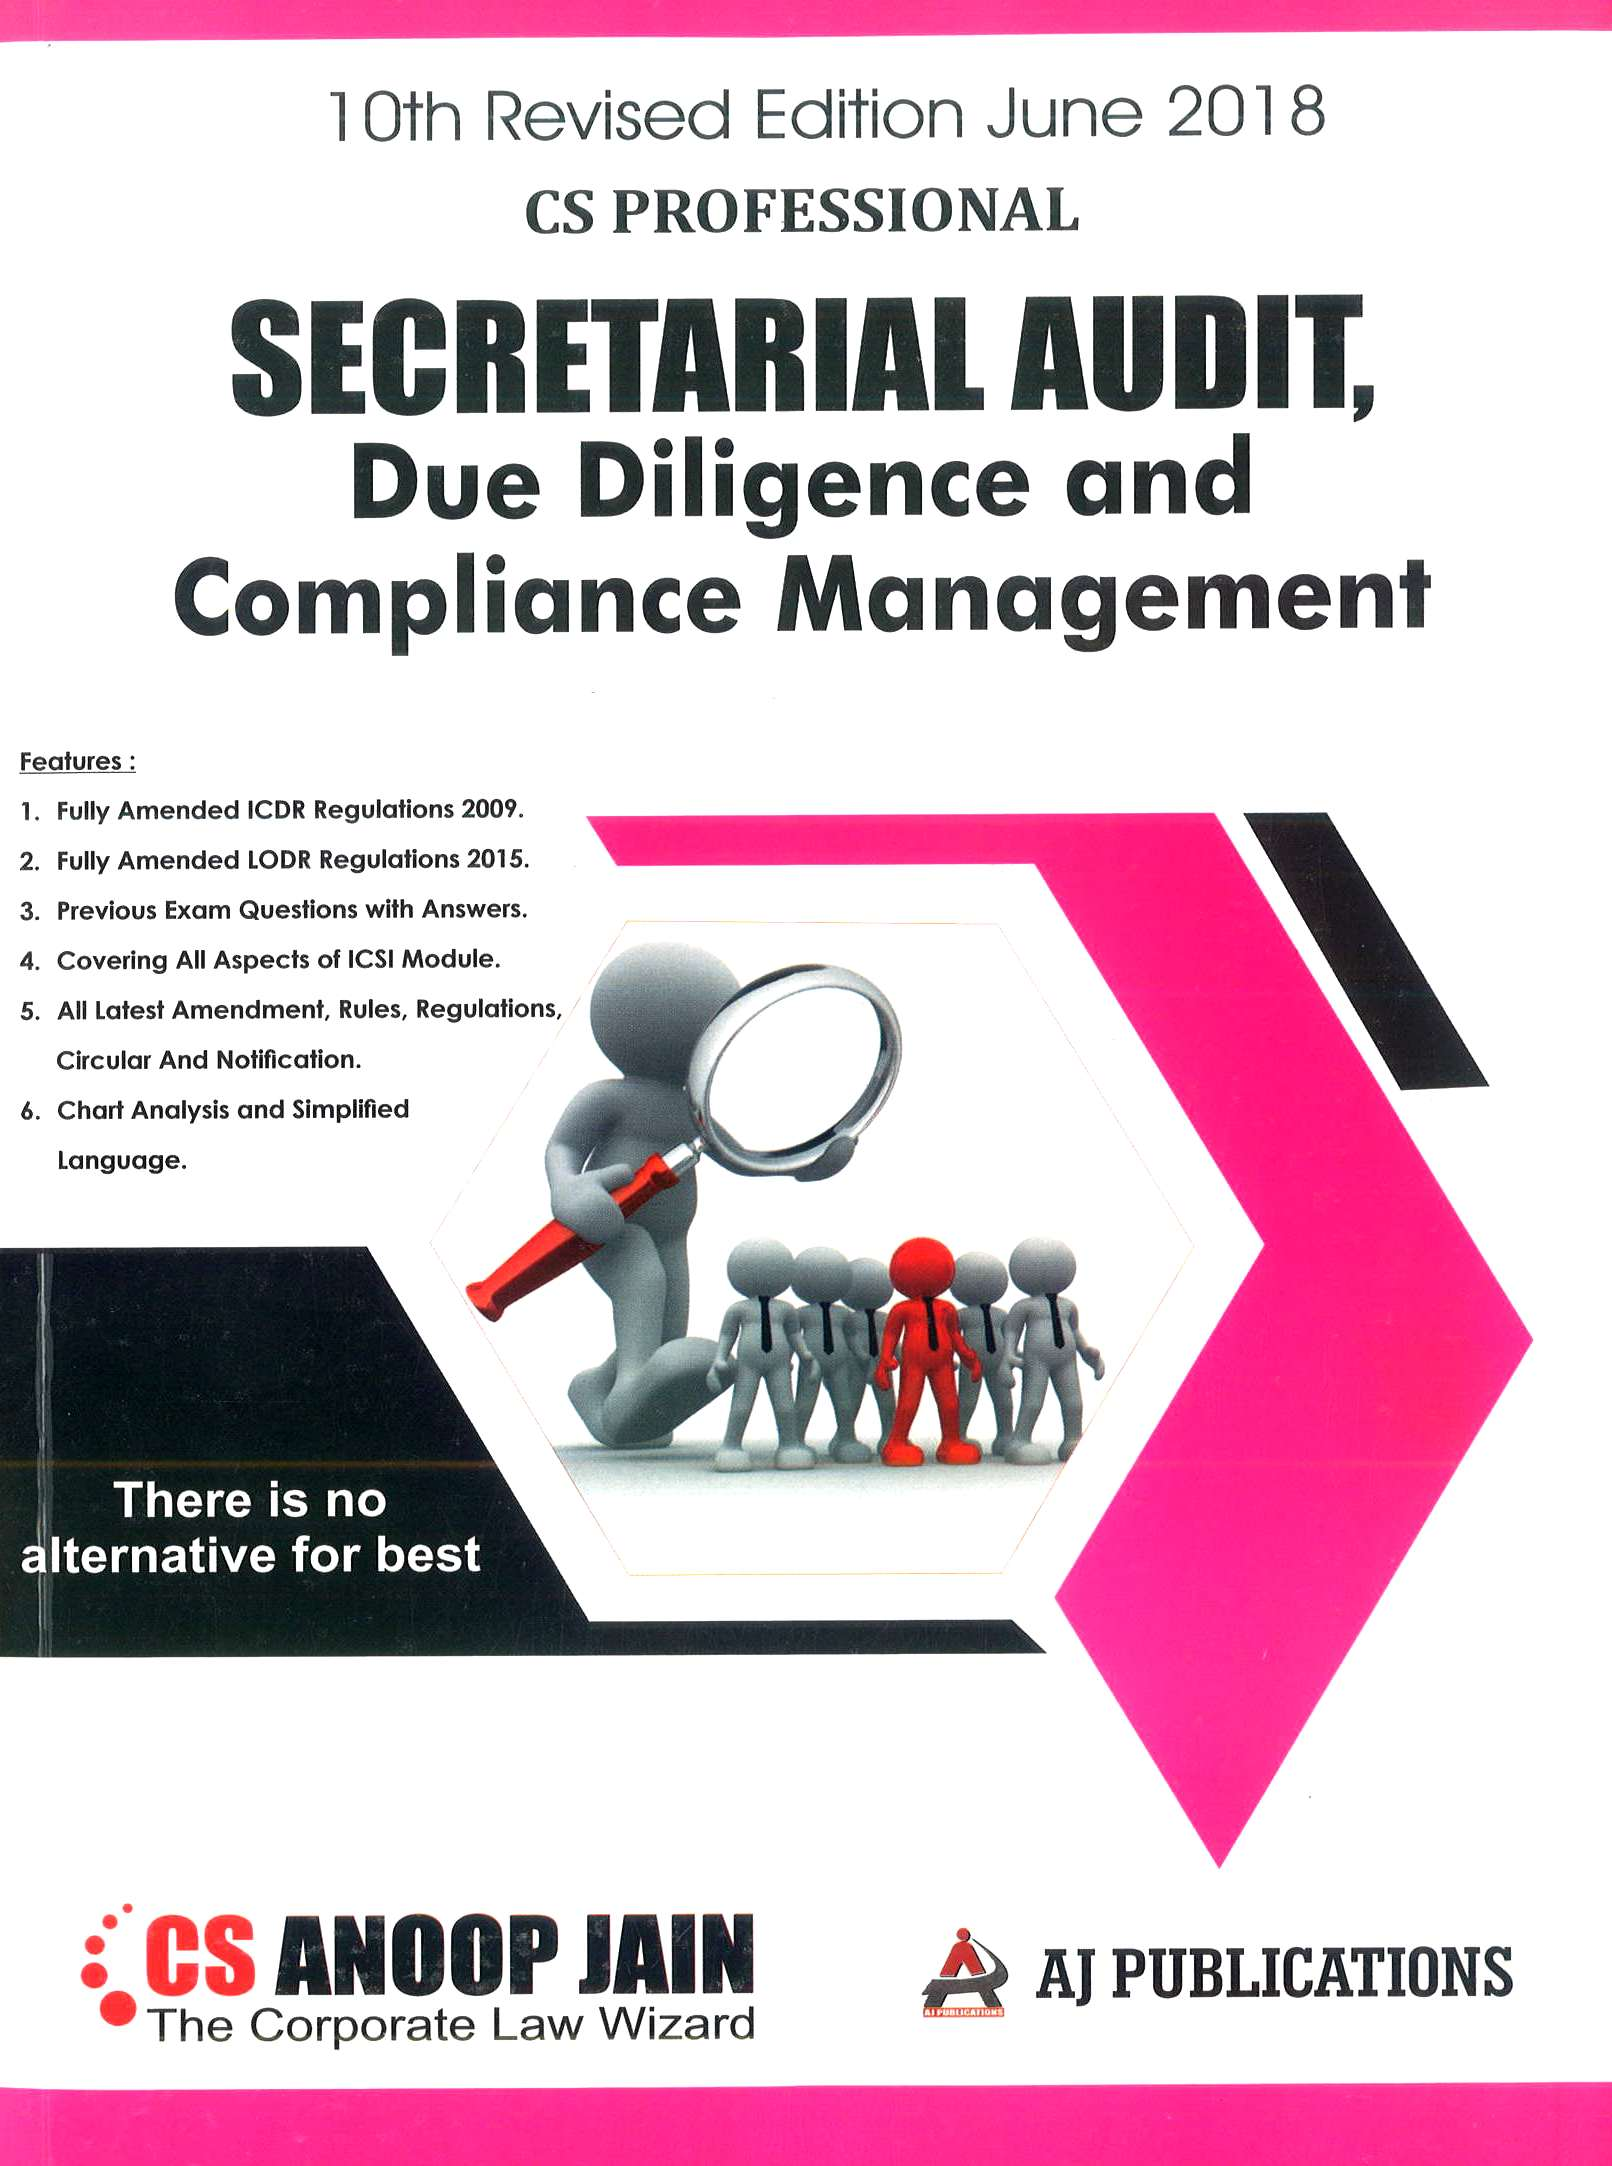 AJ Publication Secretarial Audit, Compliance Management And Due Diligence for June 2018 Exam for CS Professional by CS Anoop Jain (AJ Publishing) 2018 edition